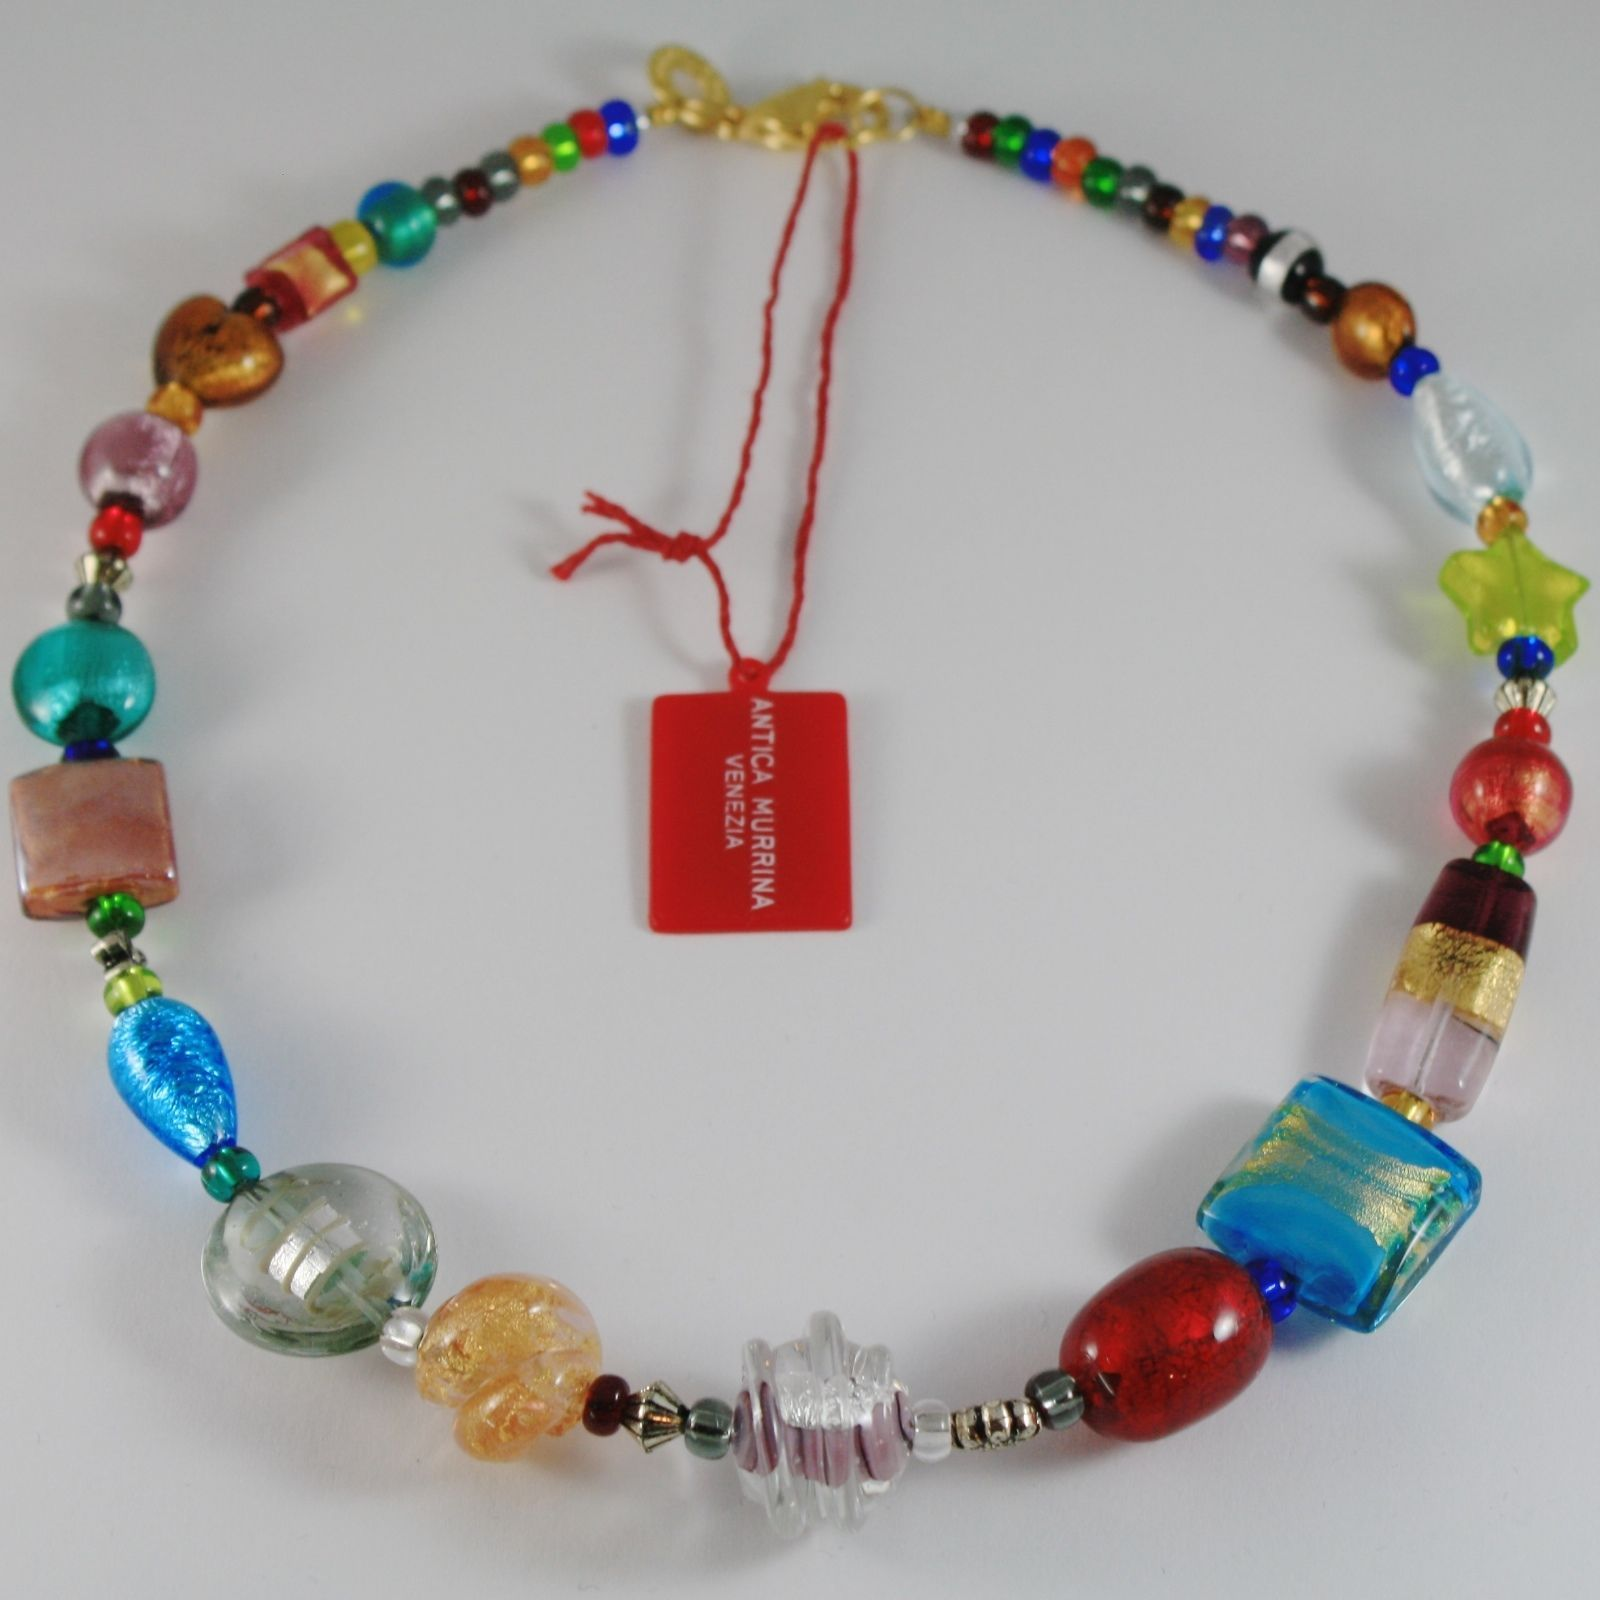 ANTICA MURRINA VENEZIA BIG NECKLACE MULTICOLOR, SPIRAL, STAR, DISC, BALL